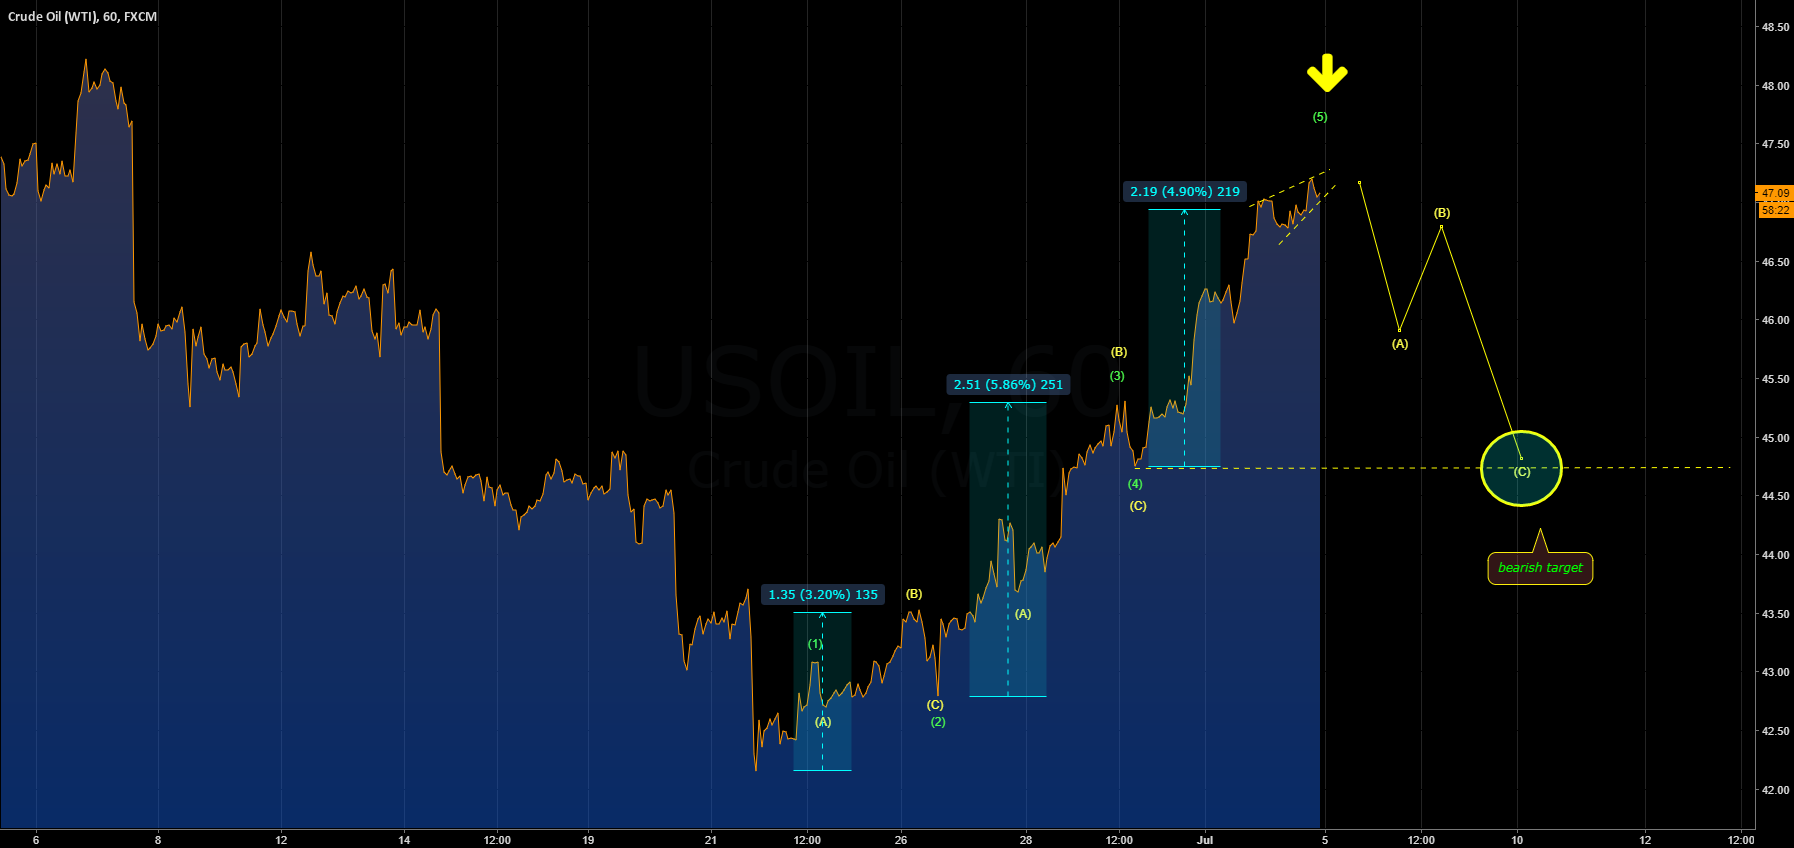 [USOIL] POTENTIAL CORRECTIVE STRUCTURE